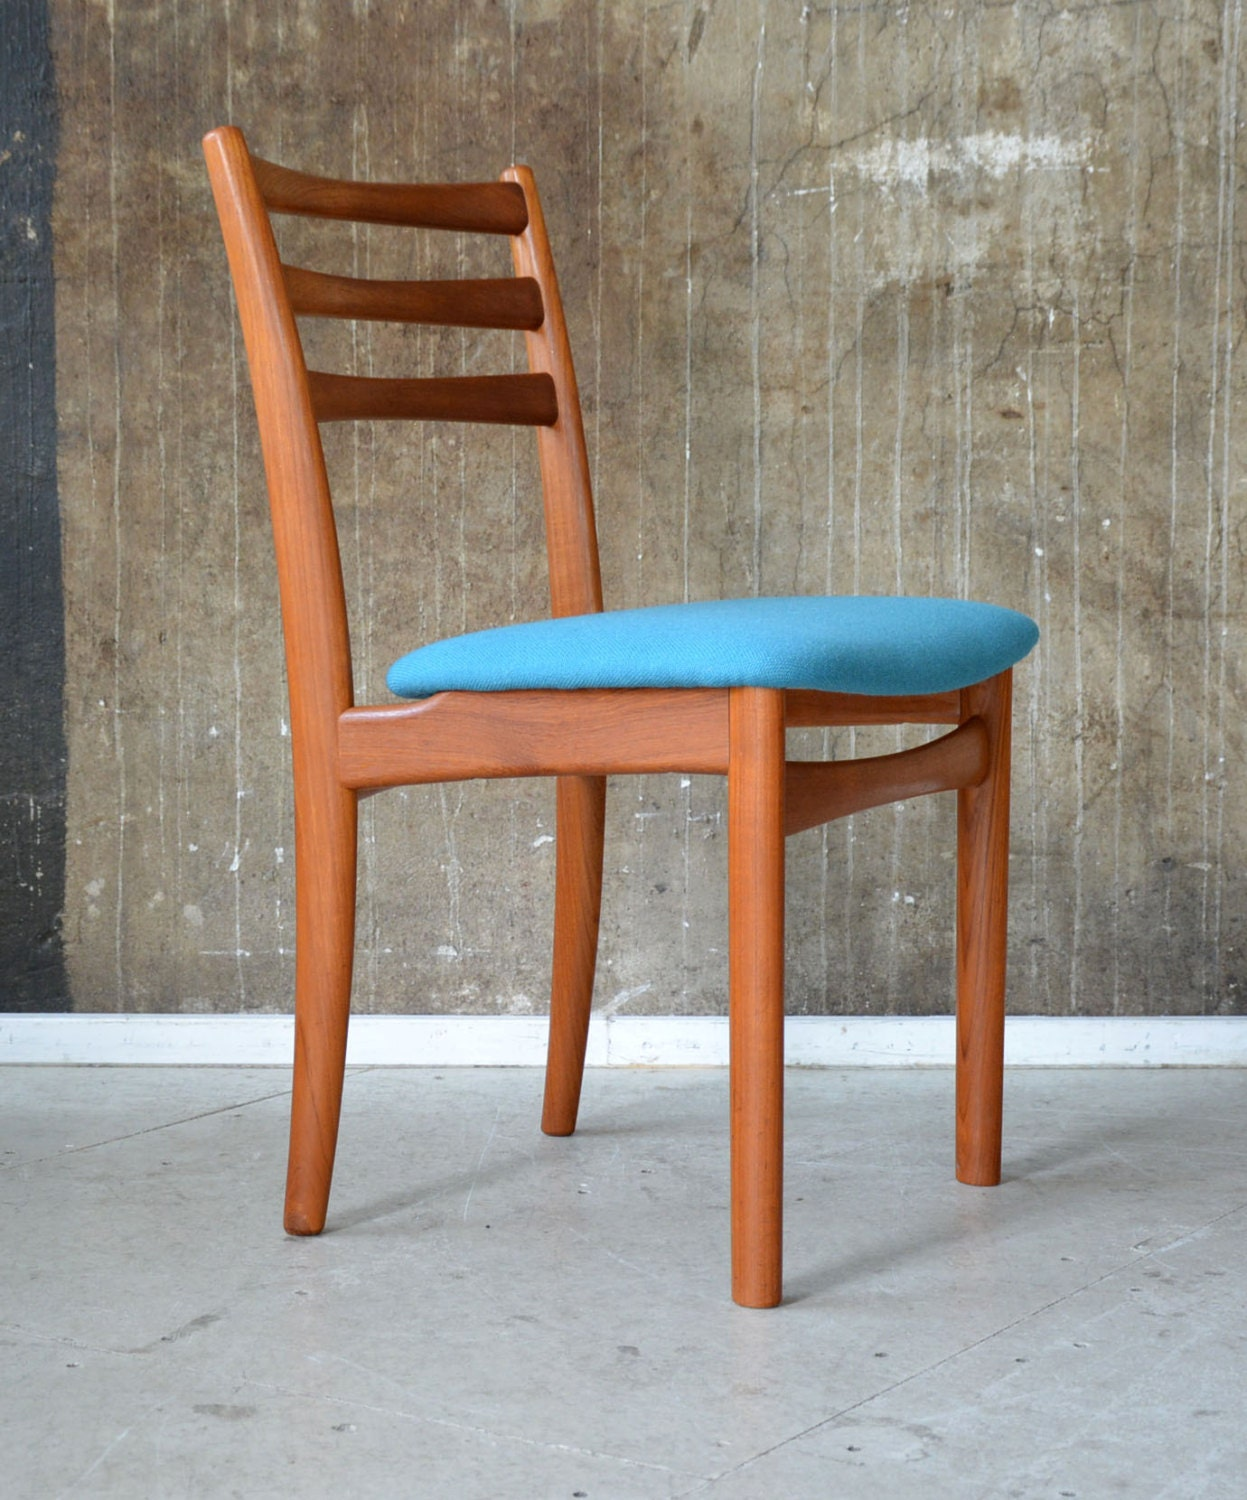 1 3 60er skovby teak stuhl danish design 60s chair vodder for Stuhl design 60er